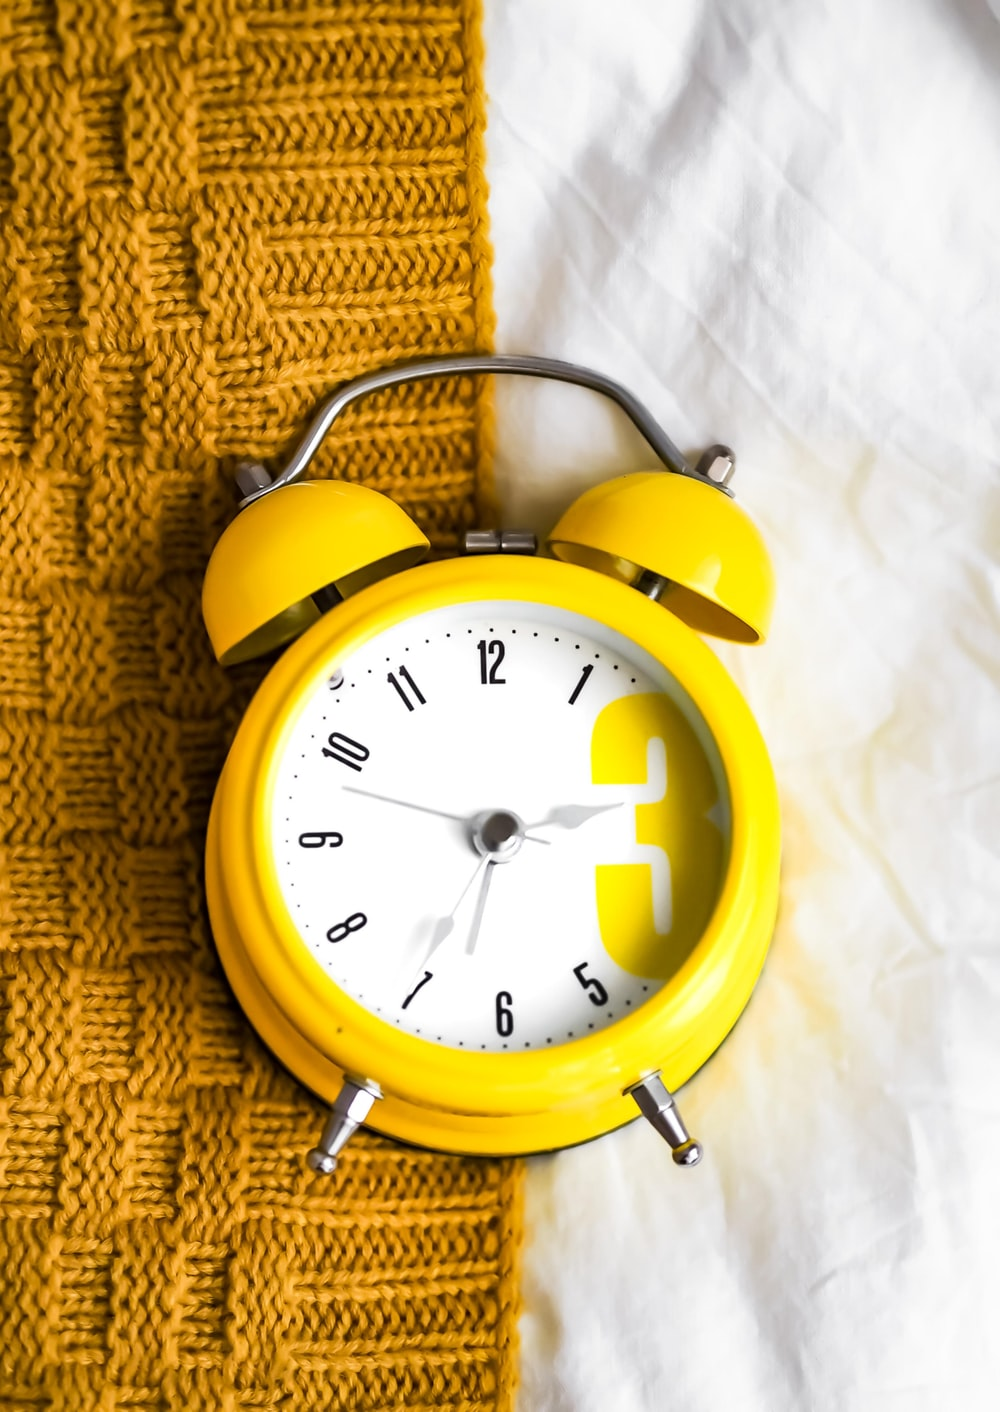 yellow and white alarm clock at 10 10